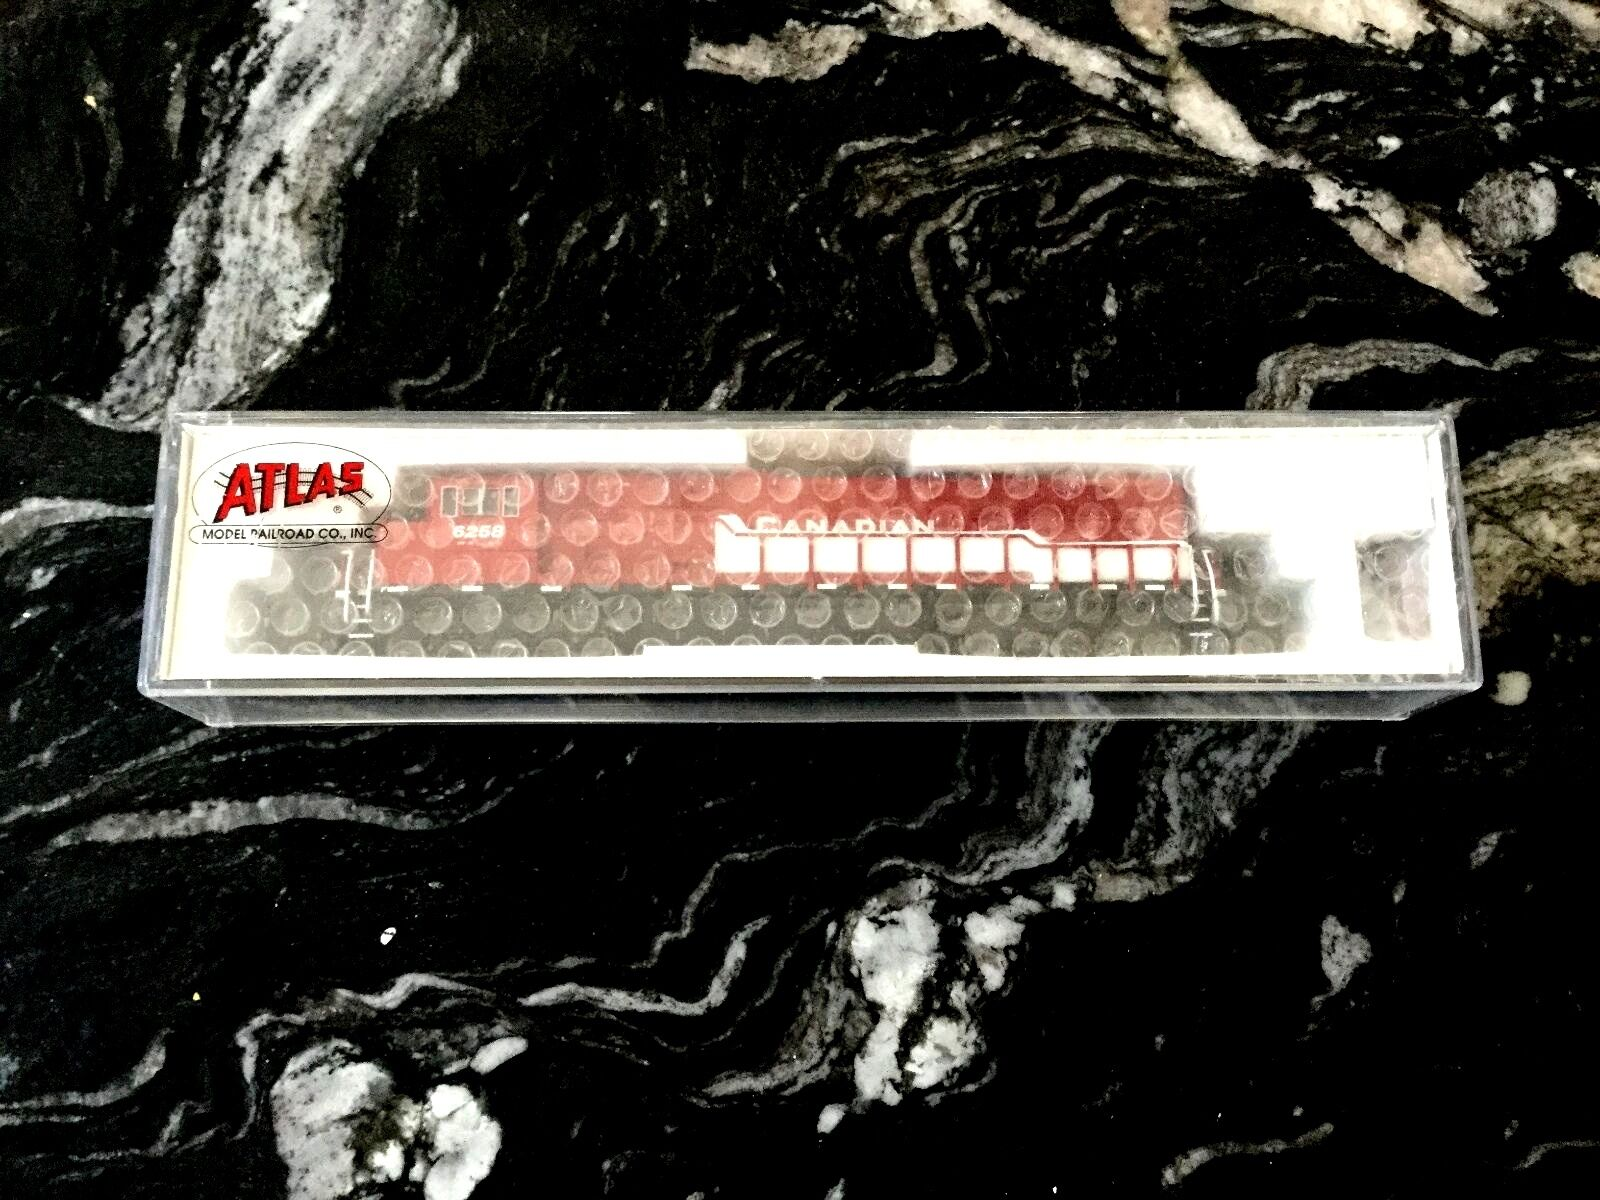 Atlas 1 160 N escala SD-60M Canadian Pacific Rd   6258 NCE para DCC   40002074 F S